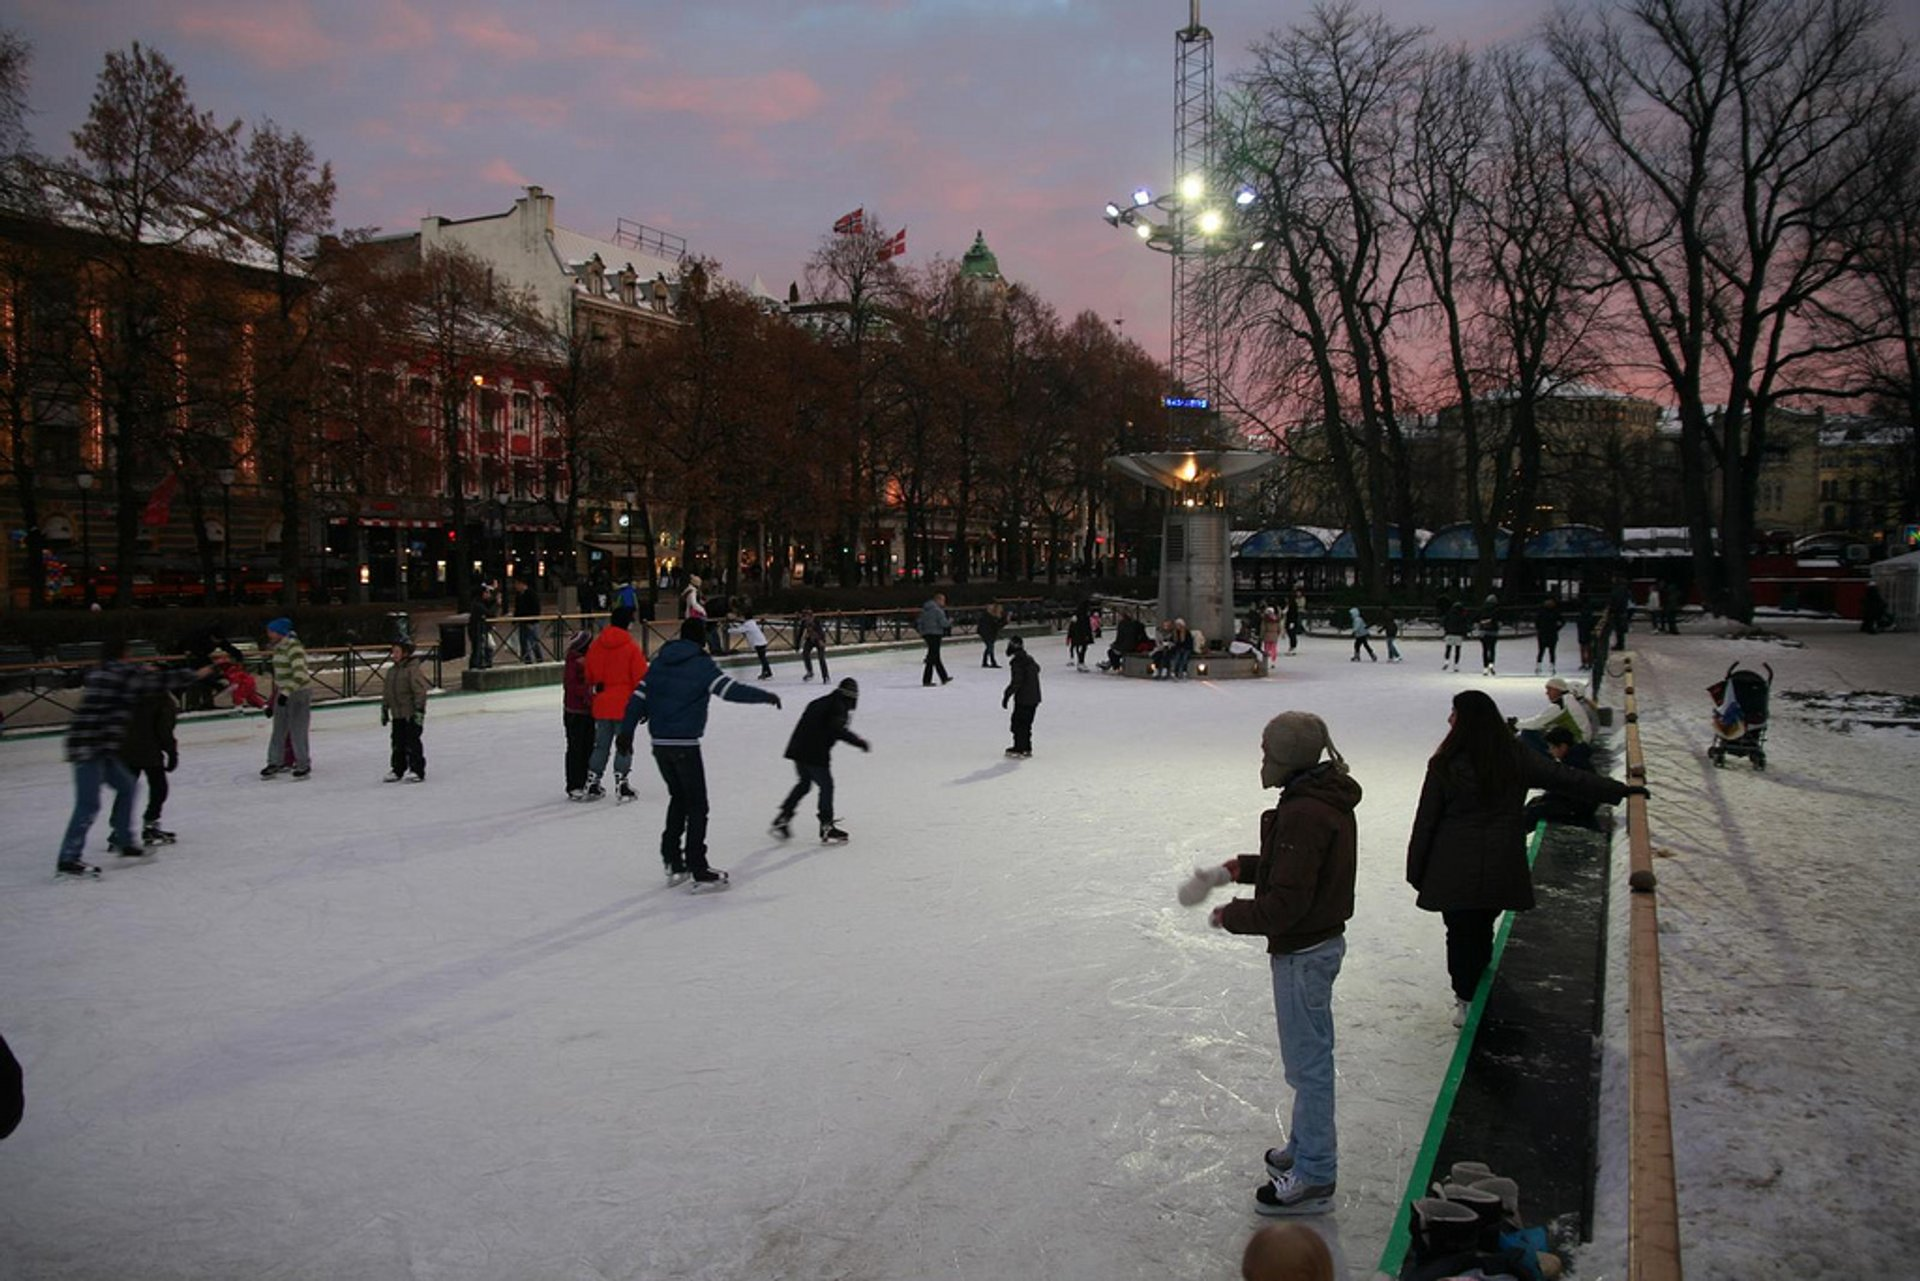 Outdoor Ice Skating in Oslo 2019 - Best Time